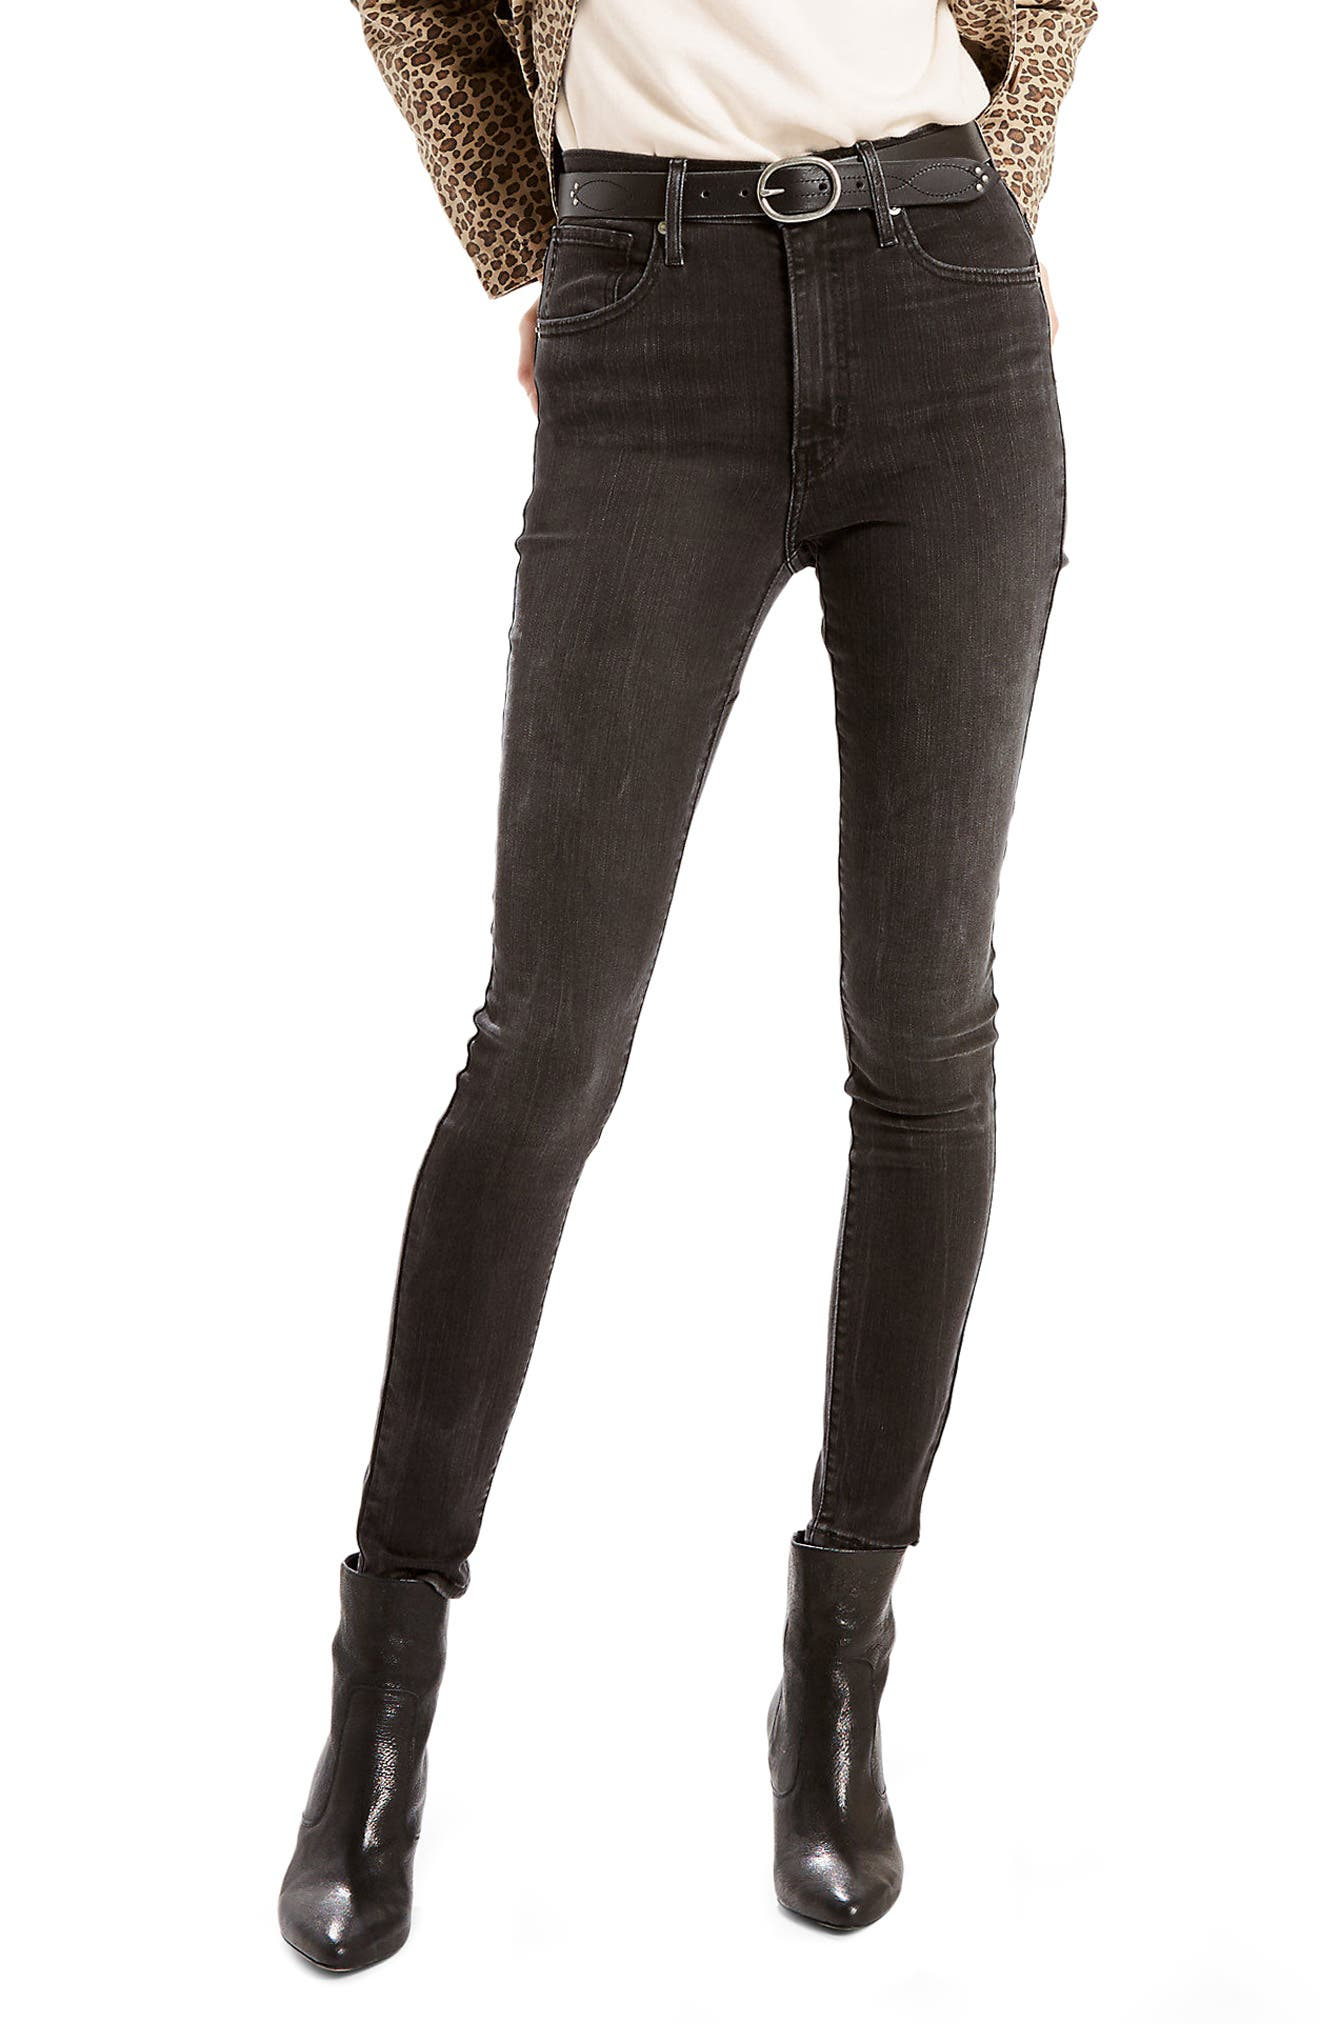 Mile High High Waist Super Skinny Jeans,                             Main thumbnail 1, color,                             020